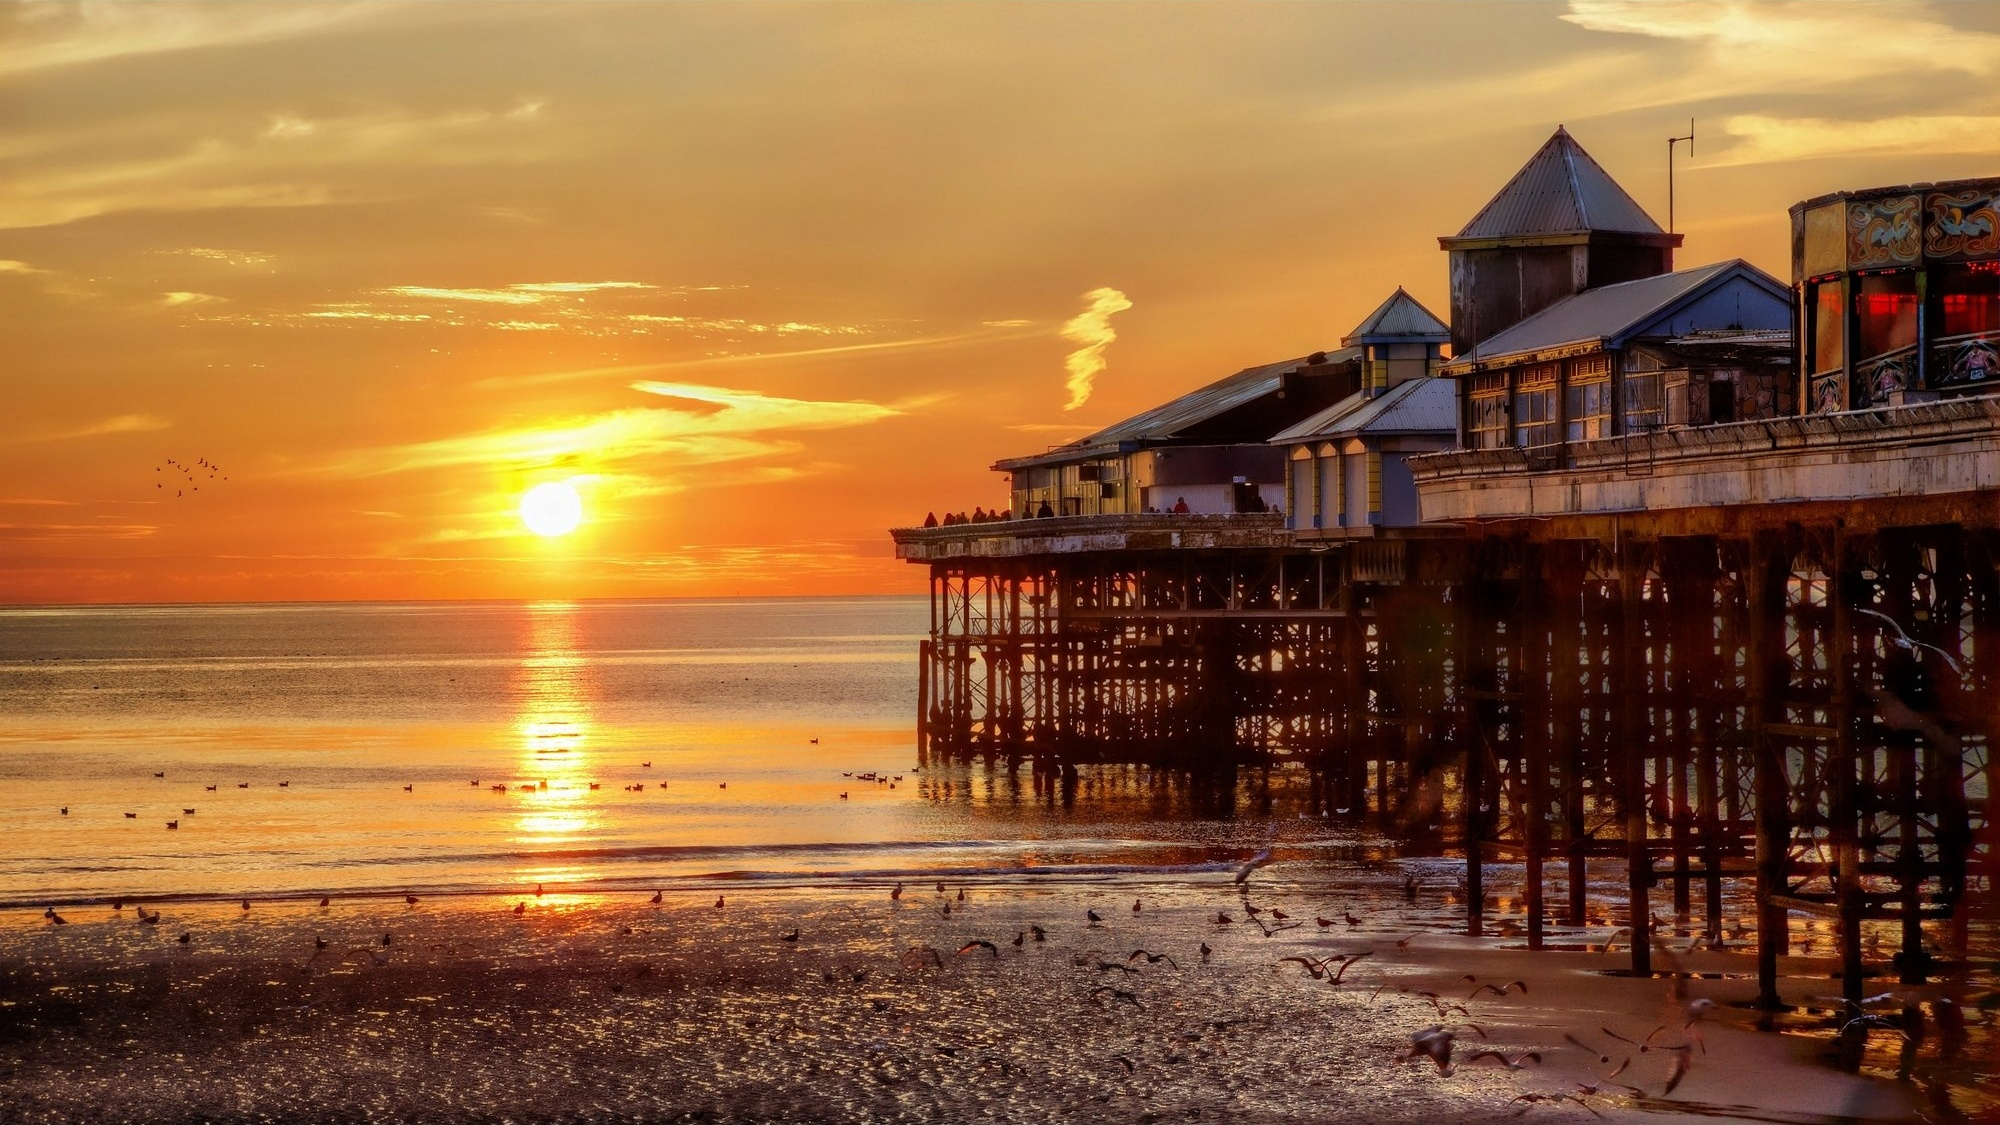 London Wallpaper Hd 1920x1080 Pier Blackpool United Kingdom Sunset Landscape G Wallpaper